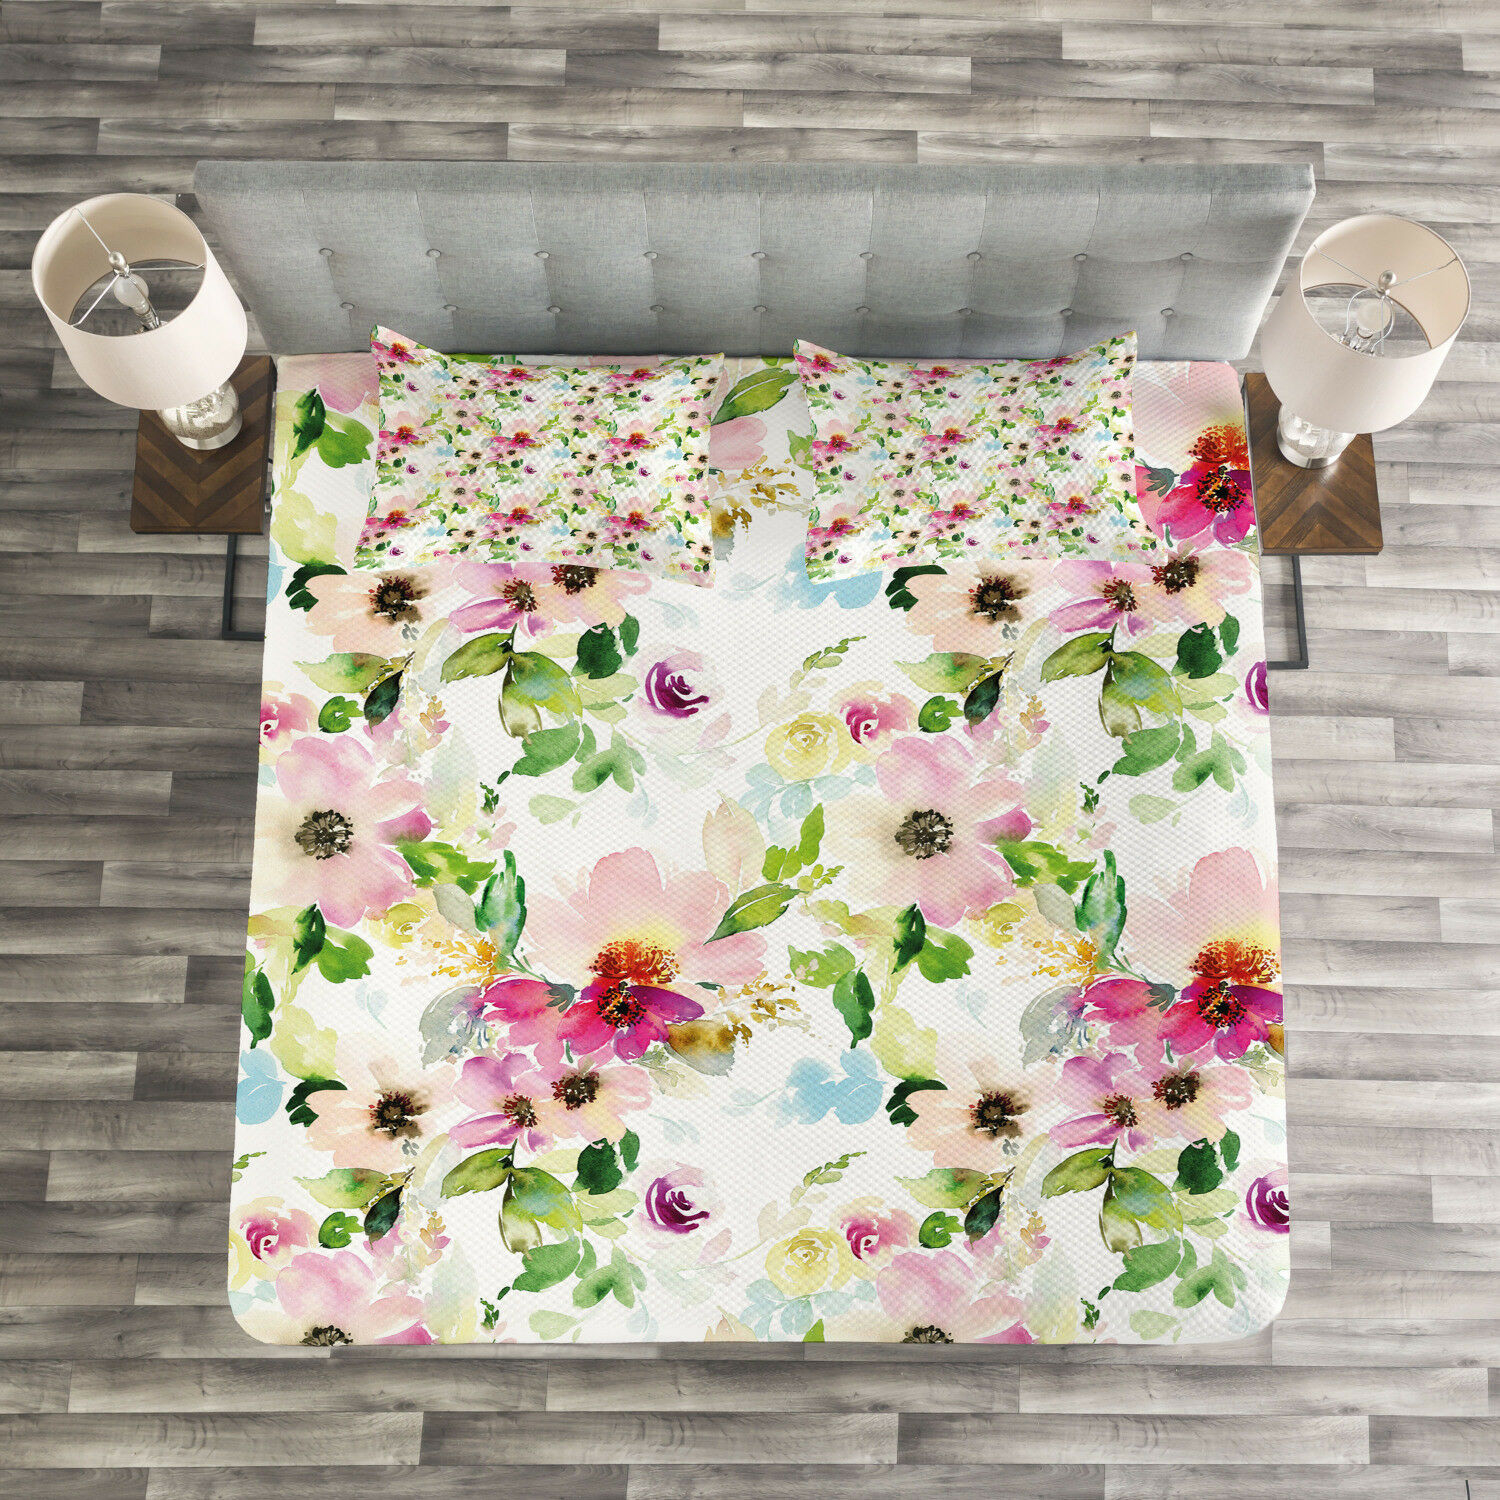 Floral Quilted Bedspread & Pillow Shams Set, Spring Flowers Pastel Print